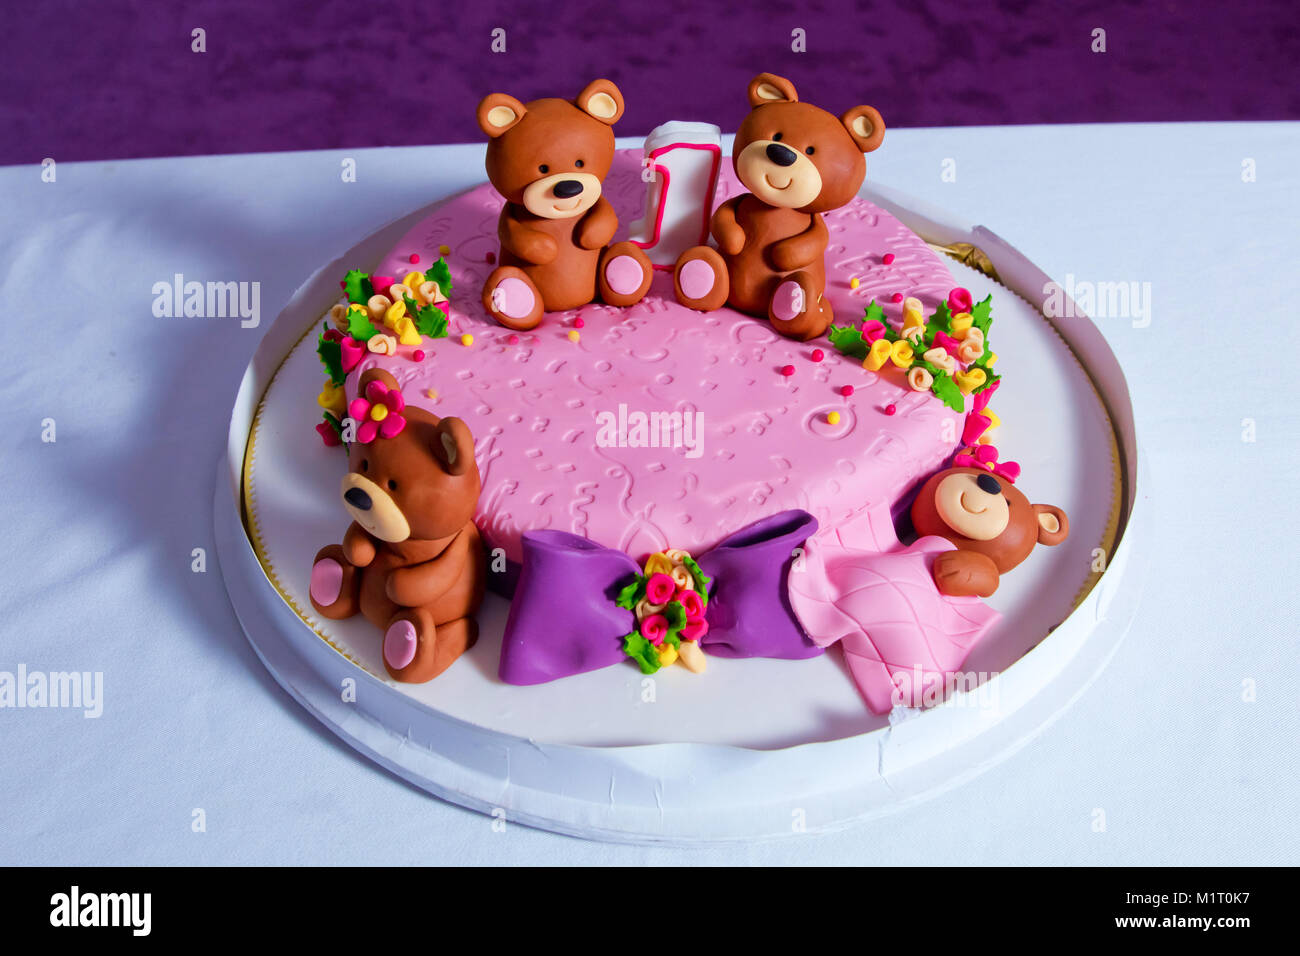 1 year old birthday Cake Big beautiful kids cake decorated with